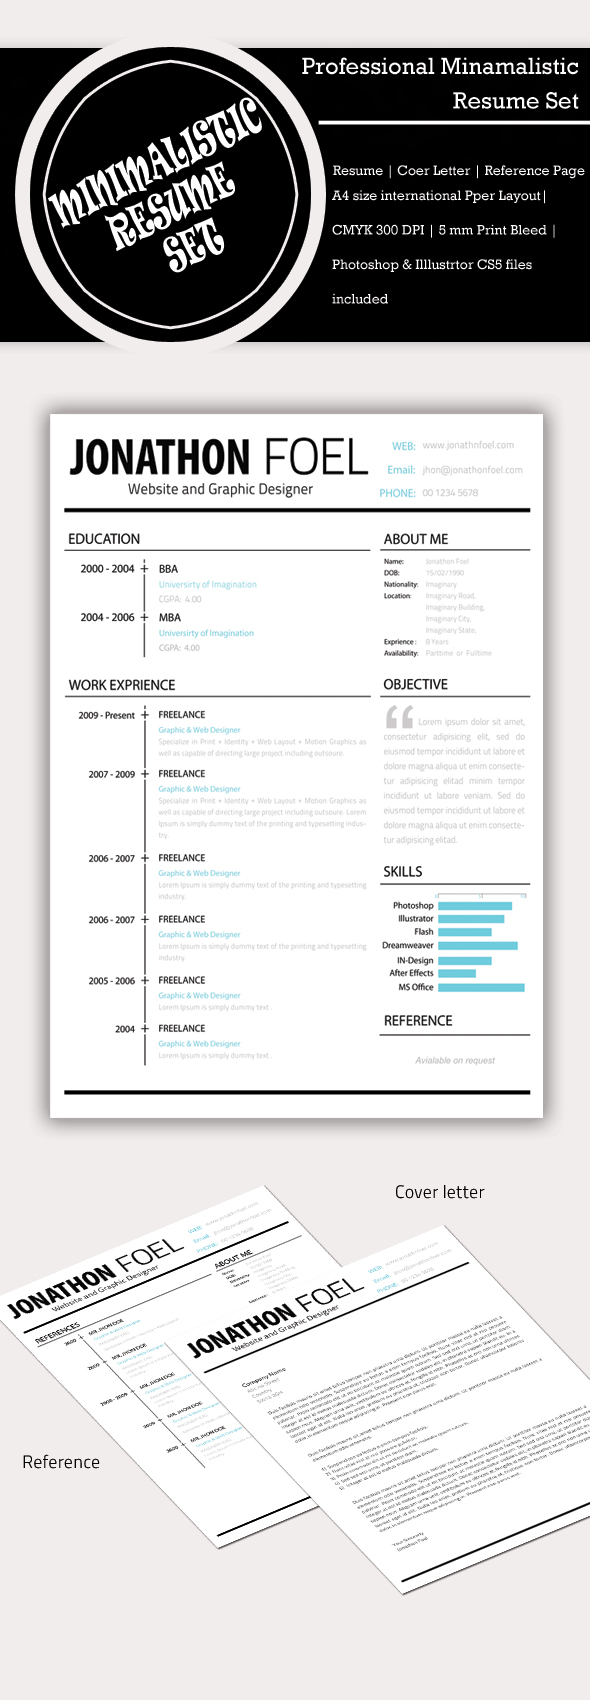 Permalink to Minimalistic Resume template PSD by Simanto90 on DeviantArt